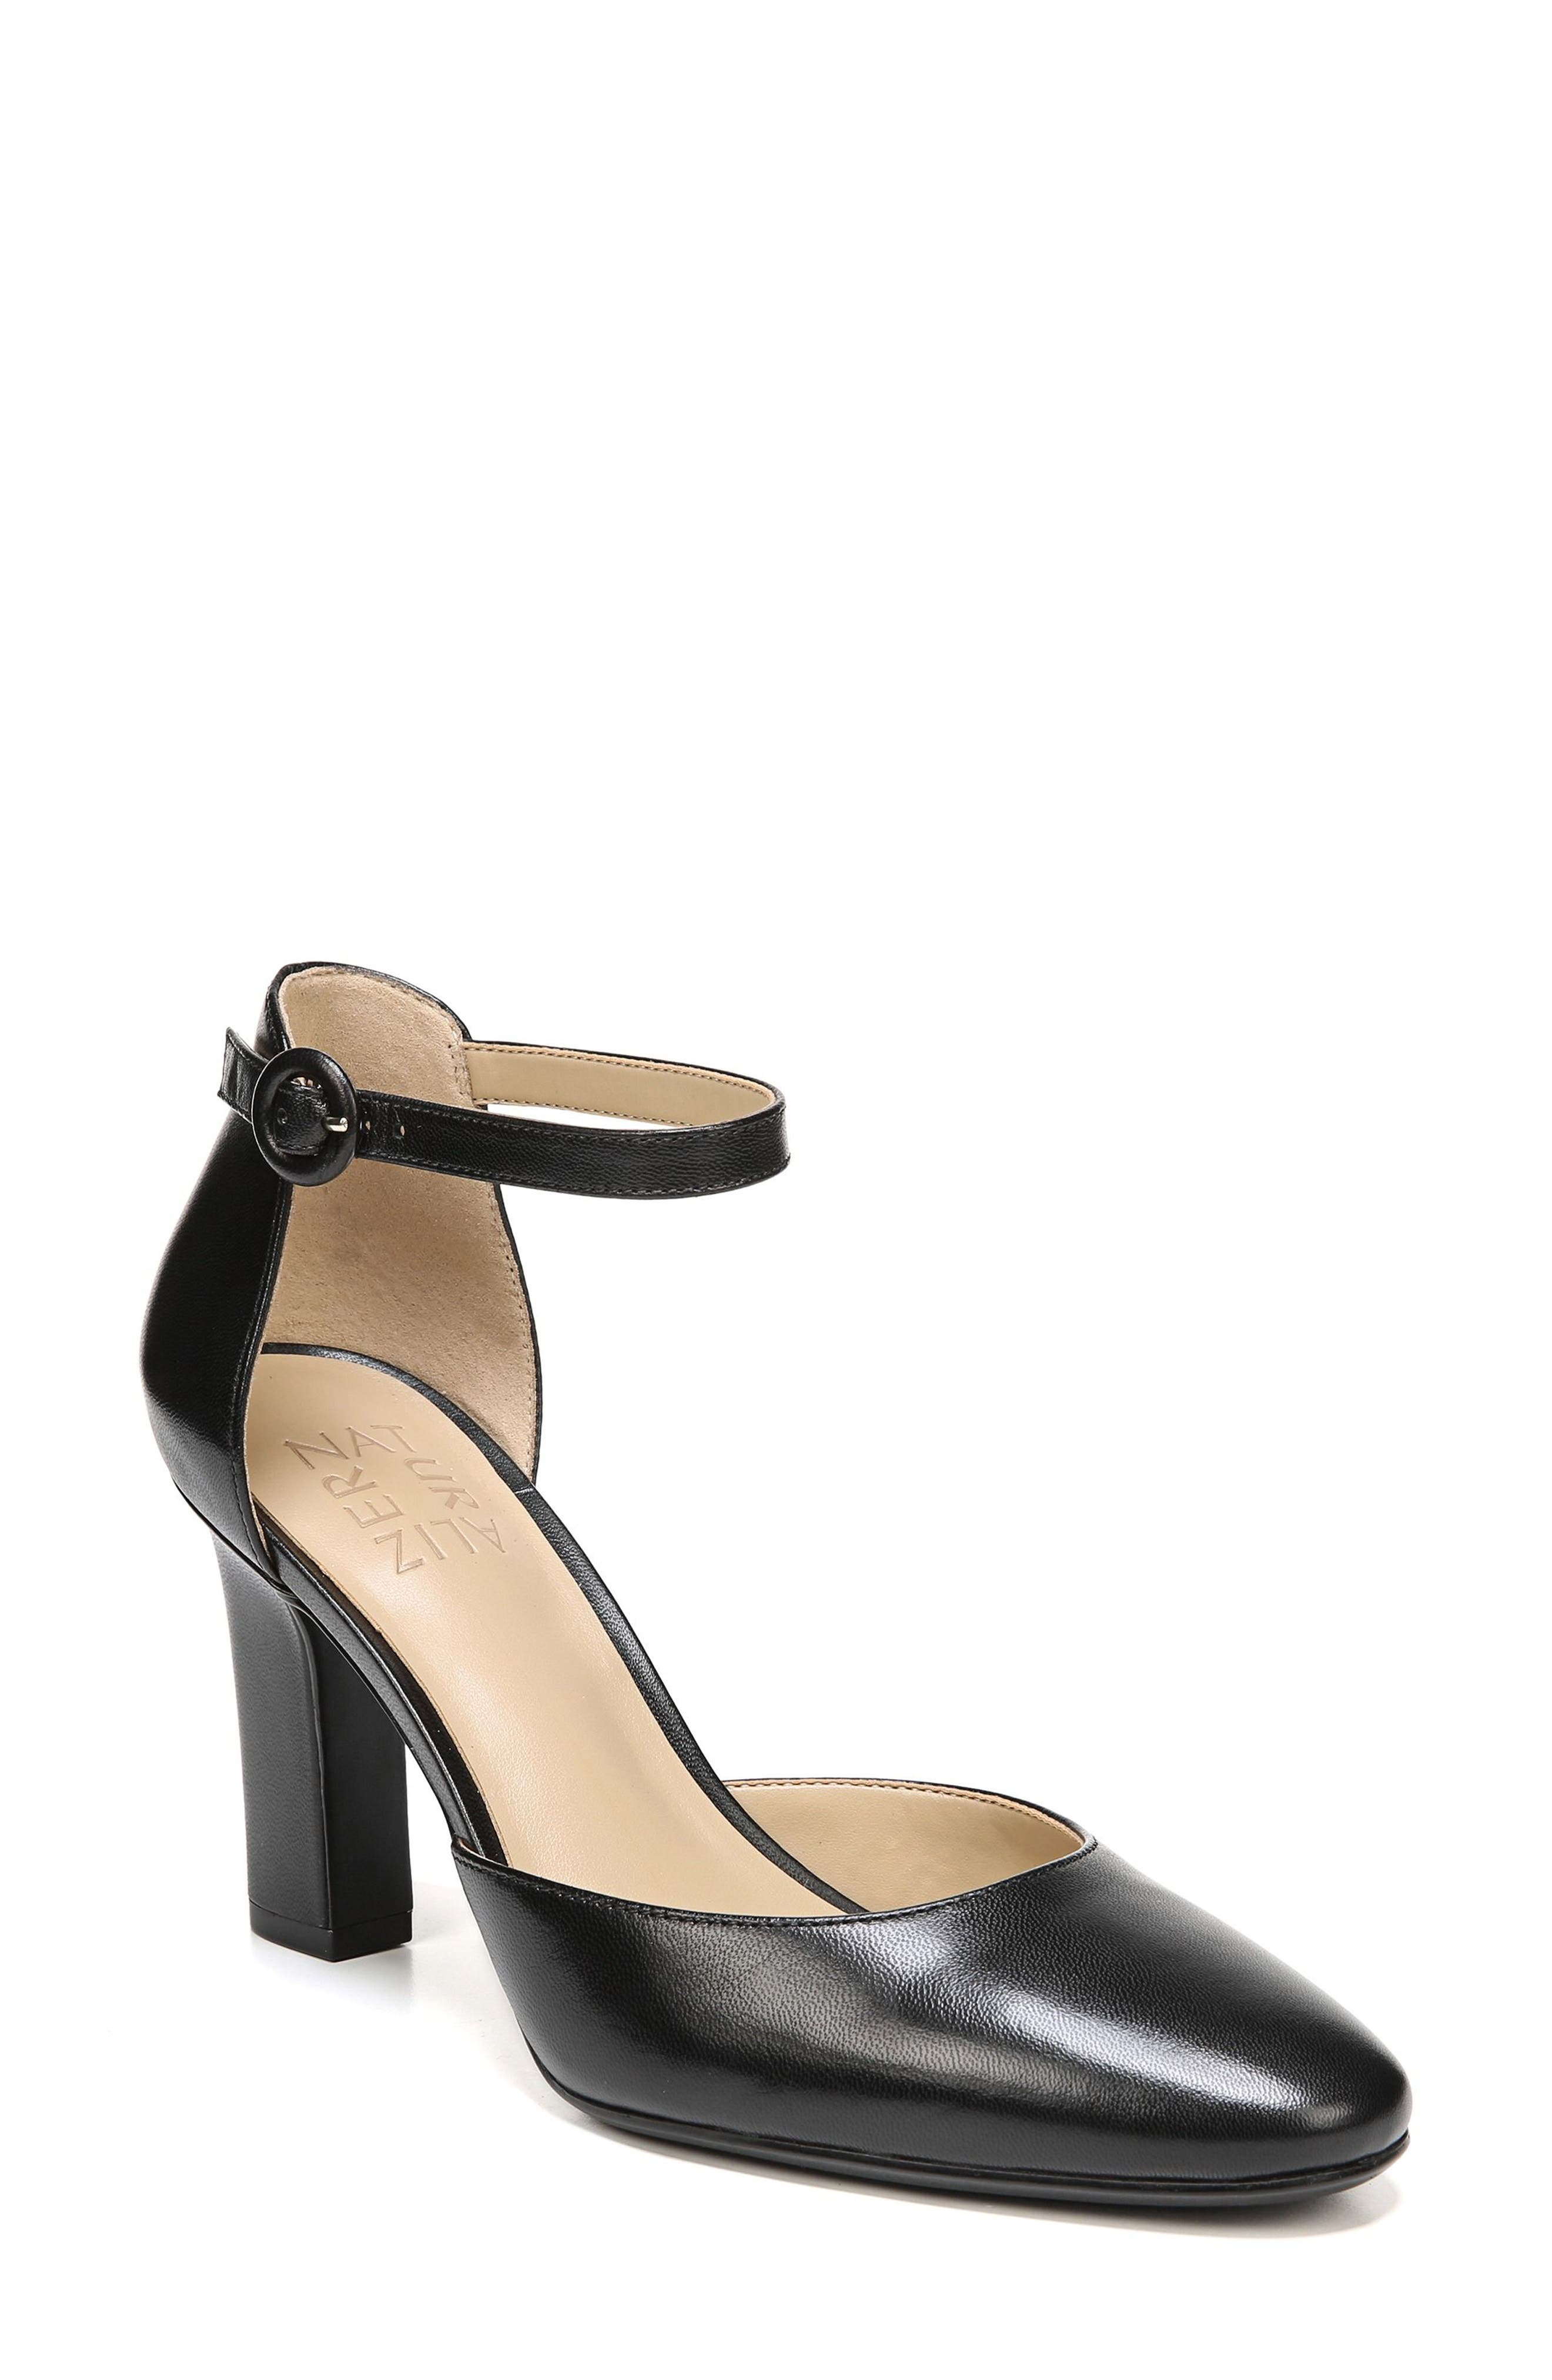 Gianna Ankle Strap Pump,                         Main,                         color,